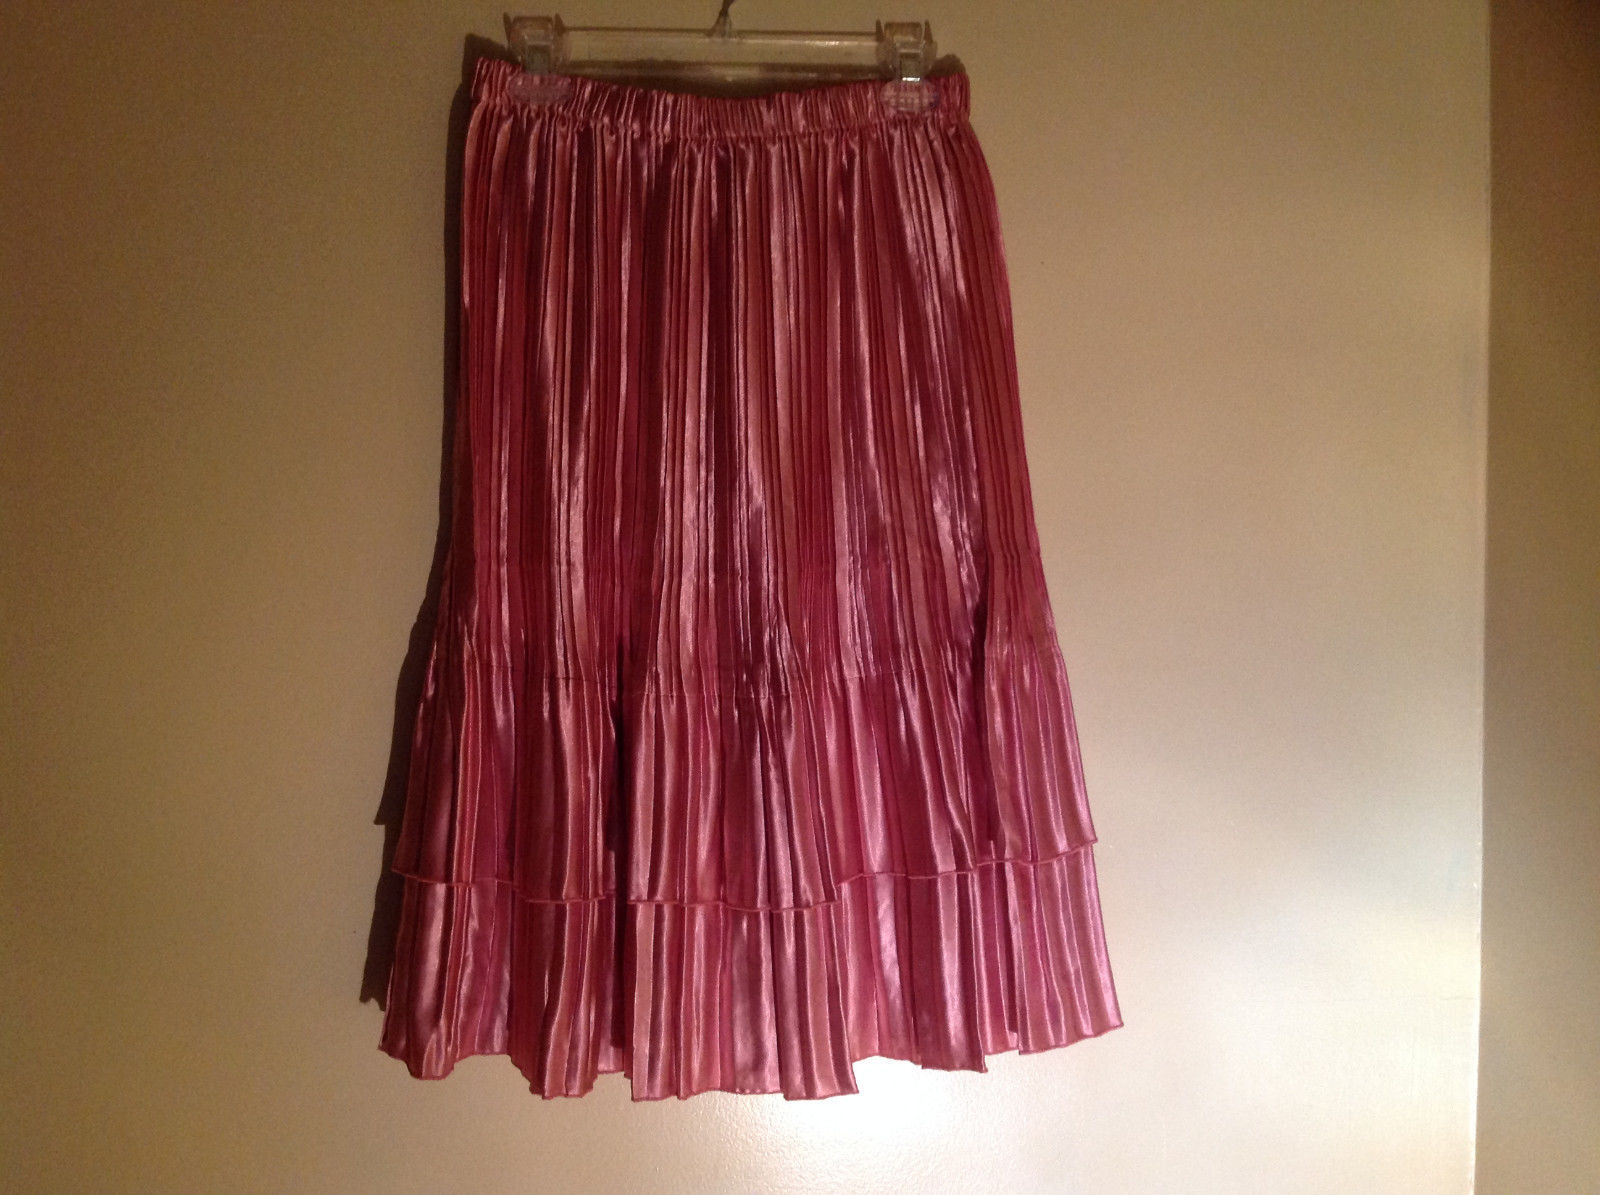 Pretty Pink Calf Length Pleated Skirt Shiny Material by Magic Scarf Co.